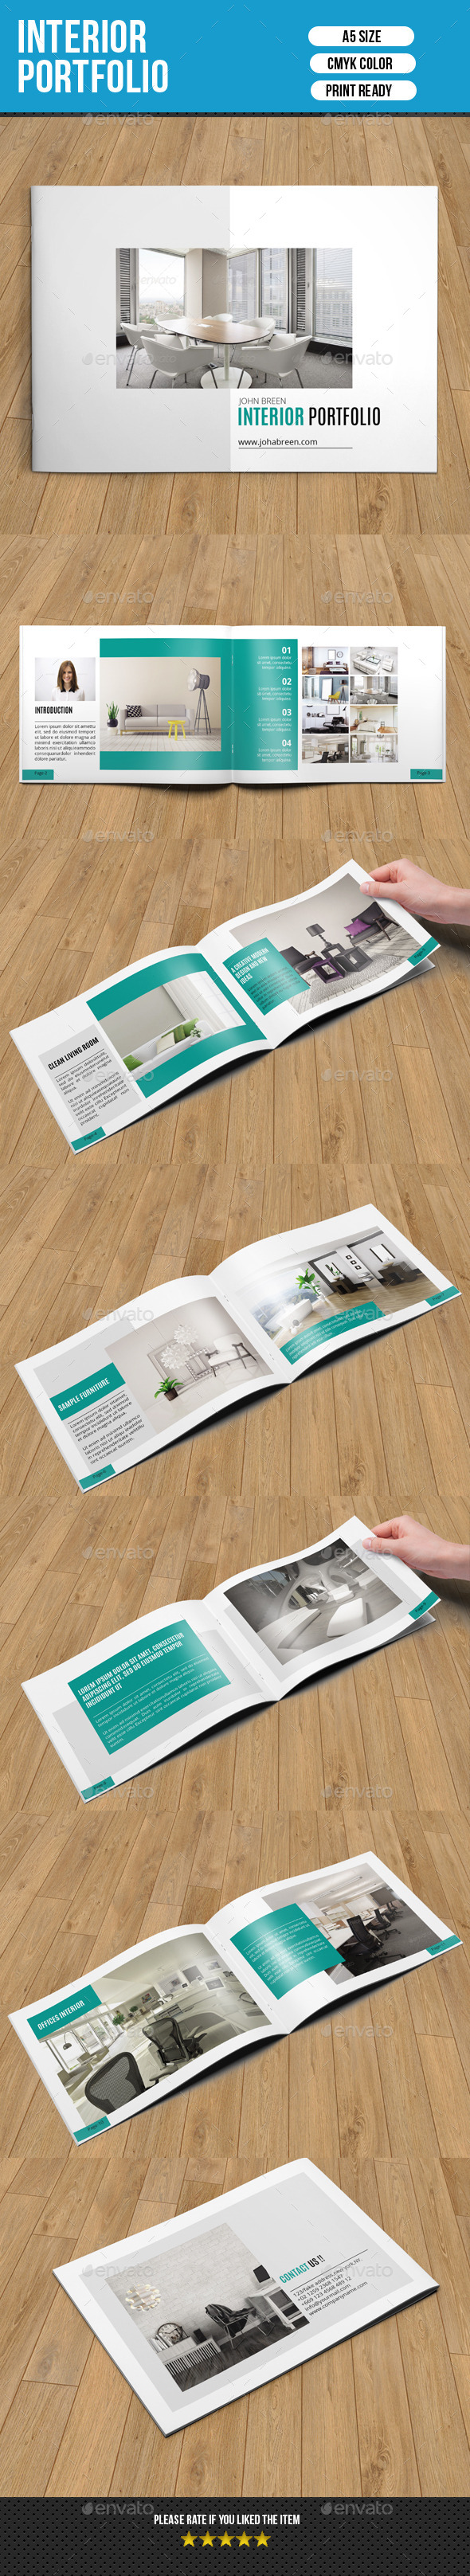 Clean Interior Design Catalog-V151 - Catalogs Brochures